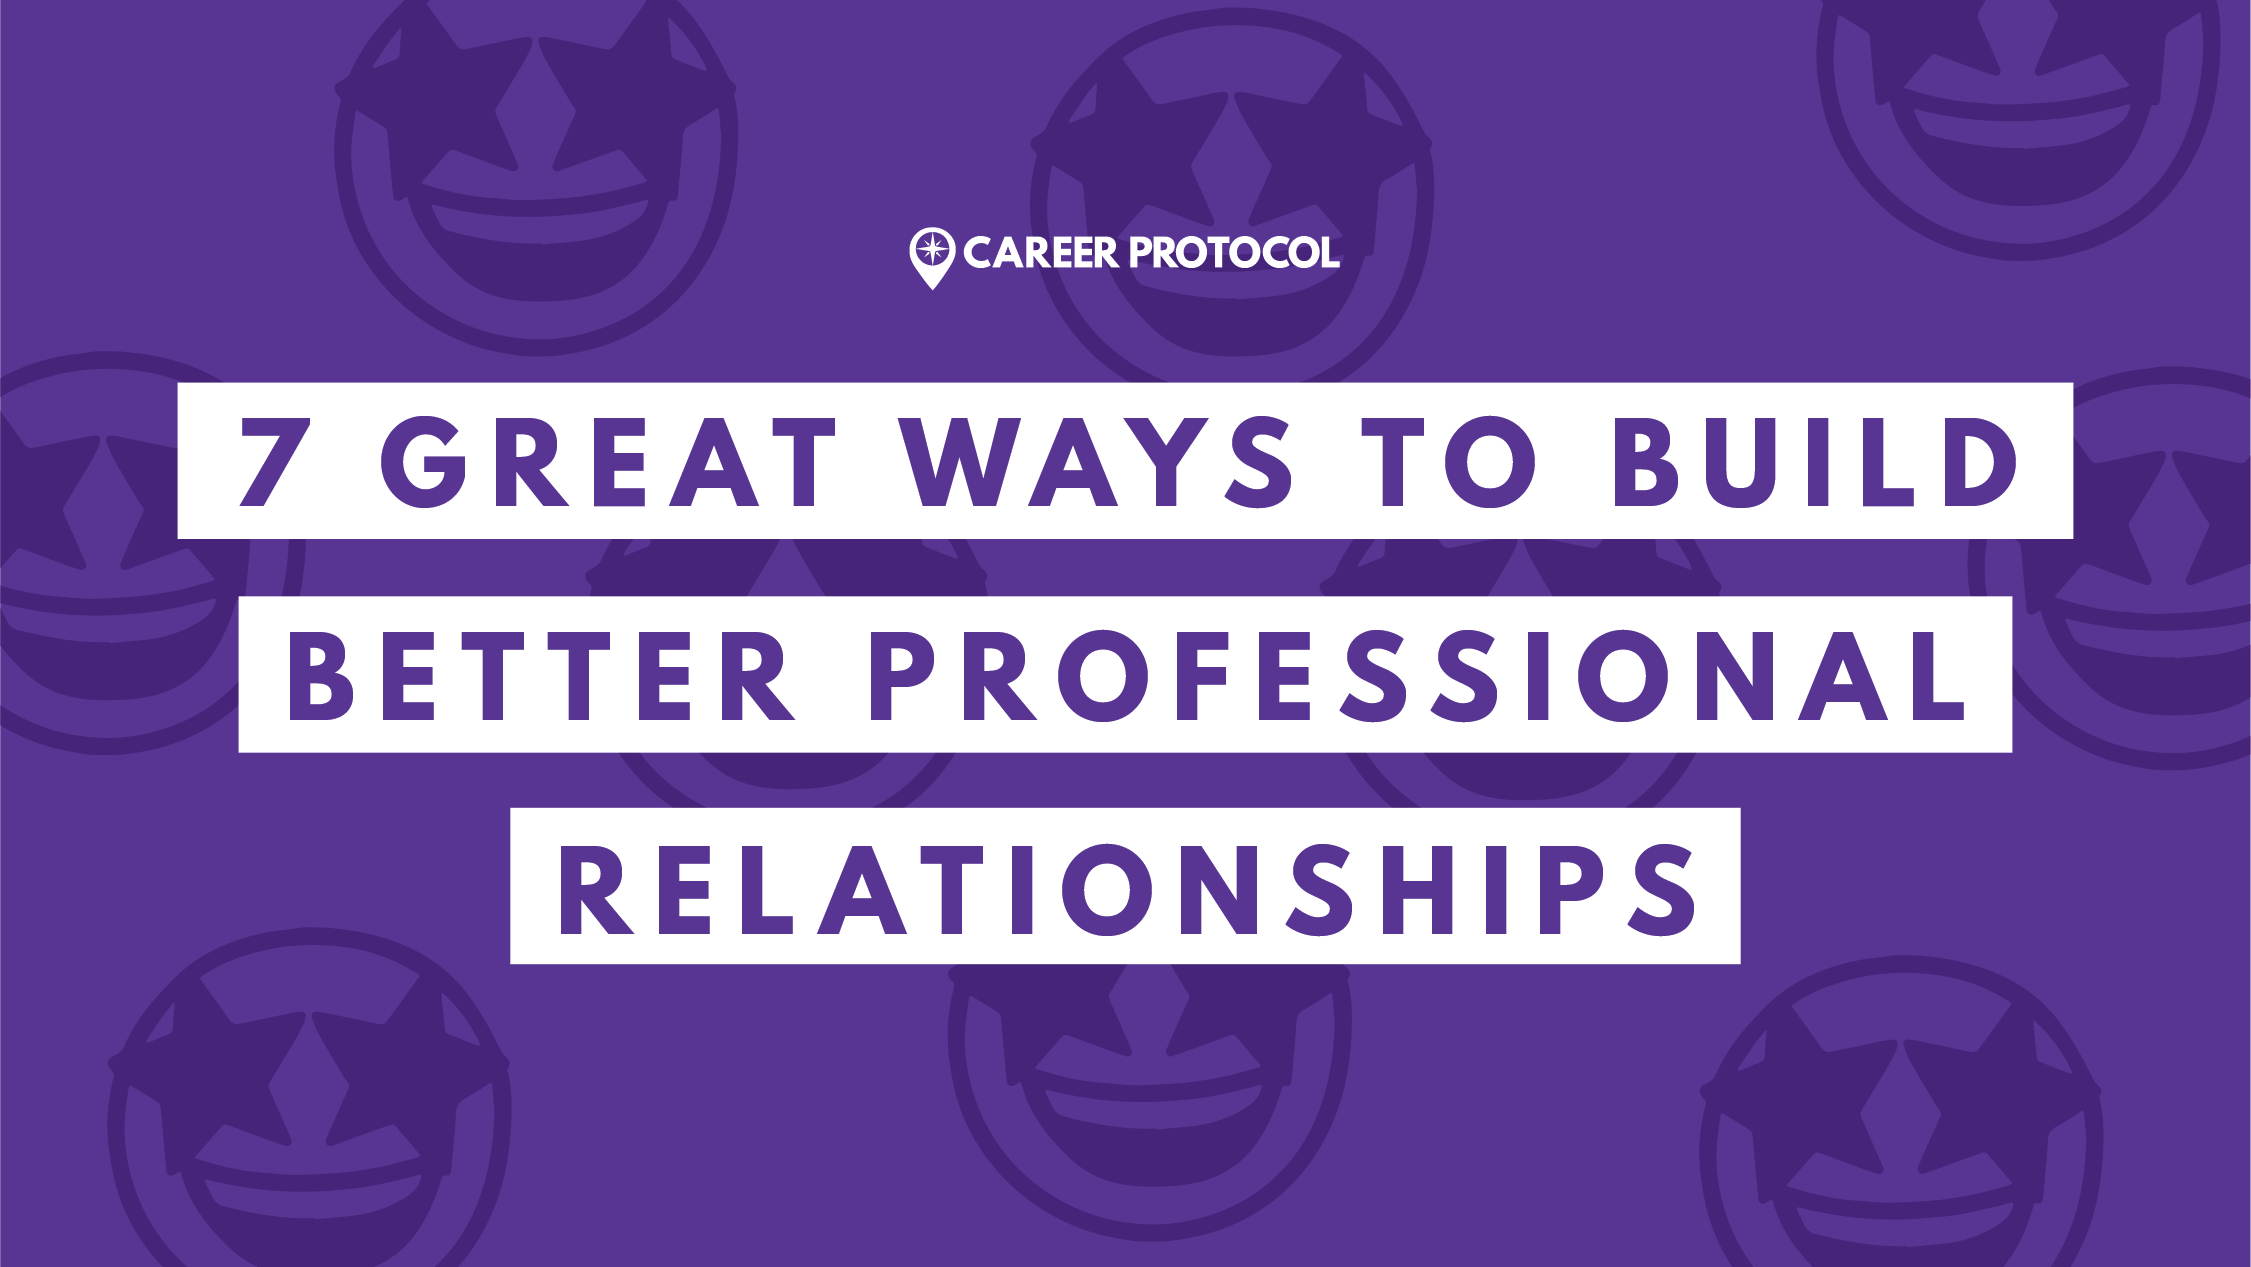 BP - 7 great ways to improve professional friendships